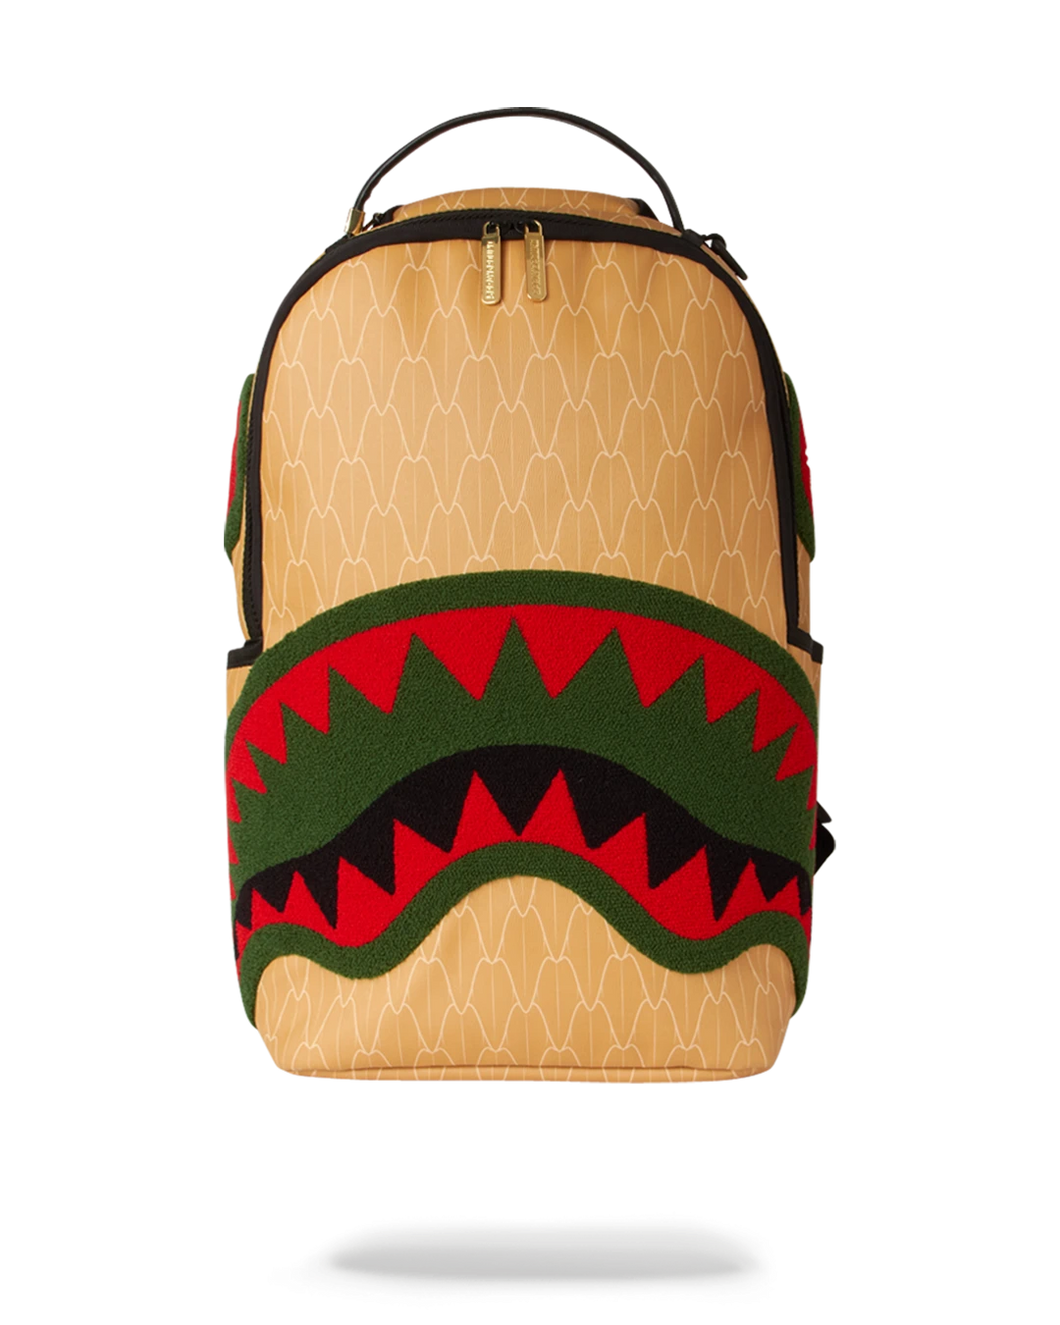 Sprayground Spucci/Gucci Backpack